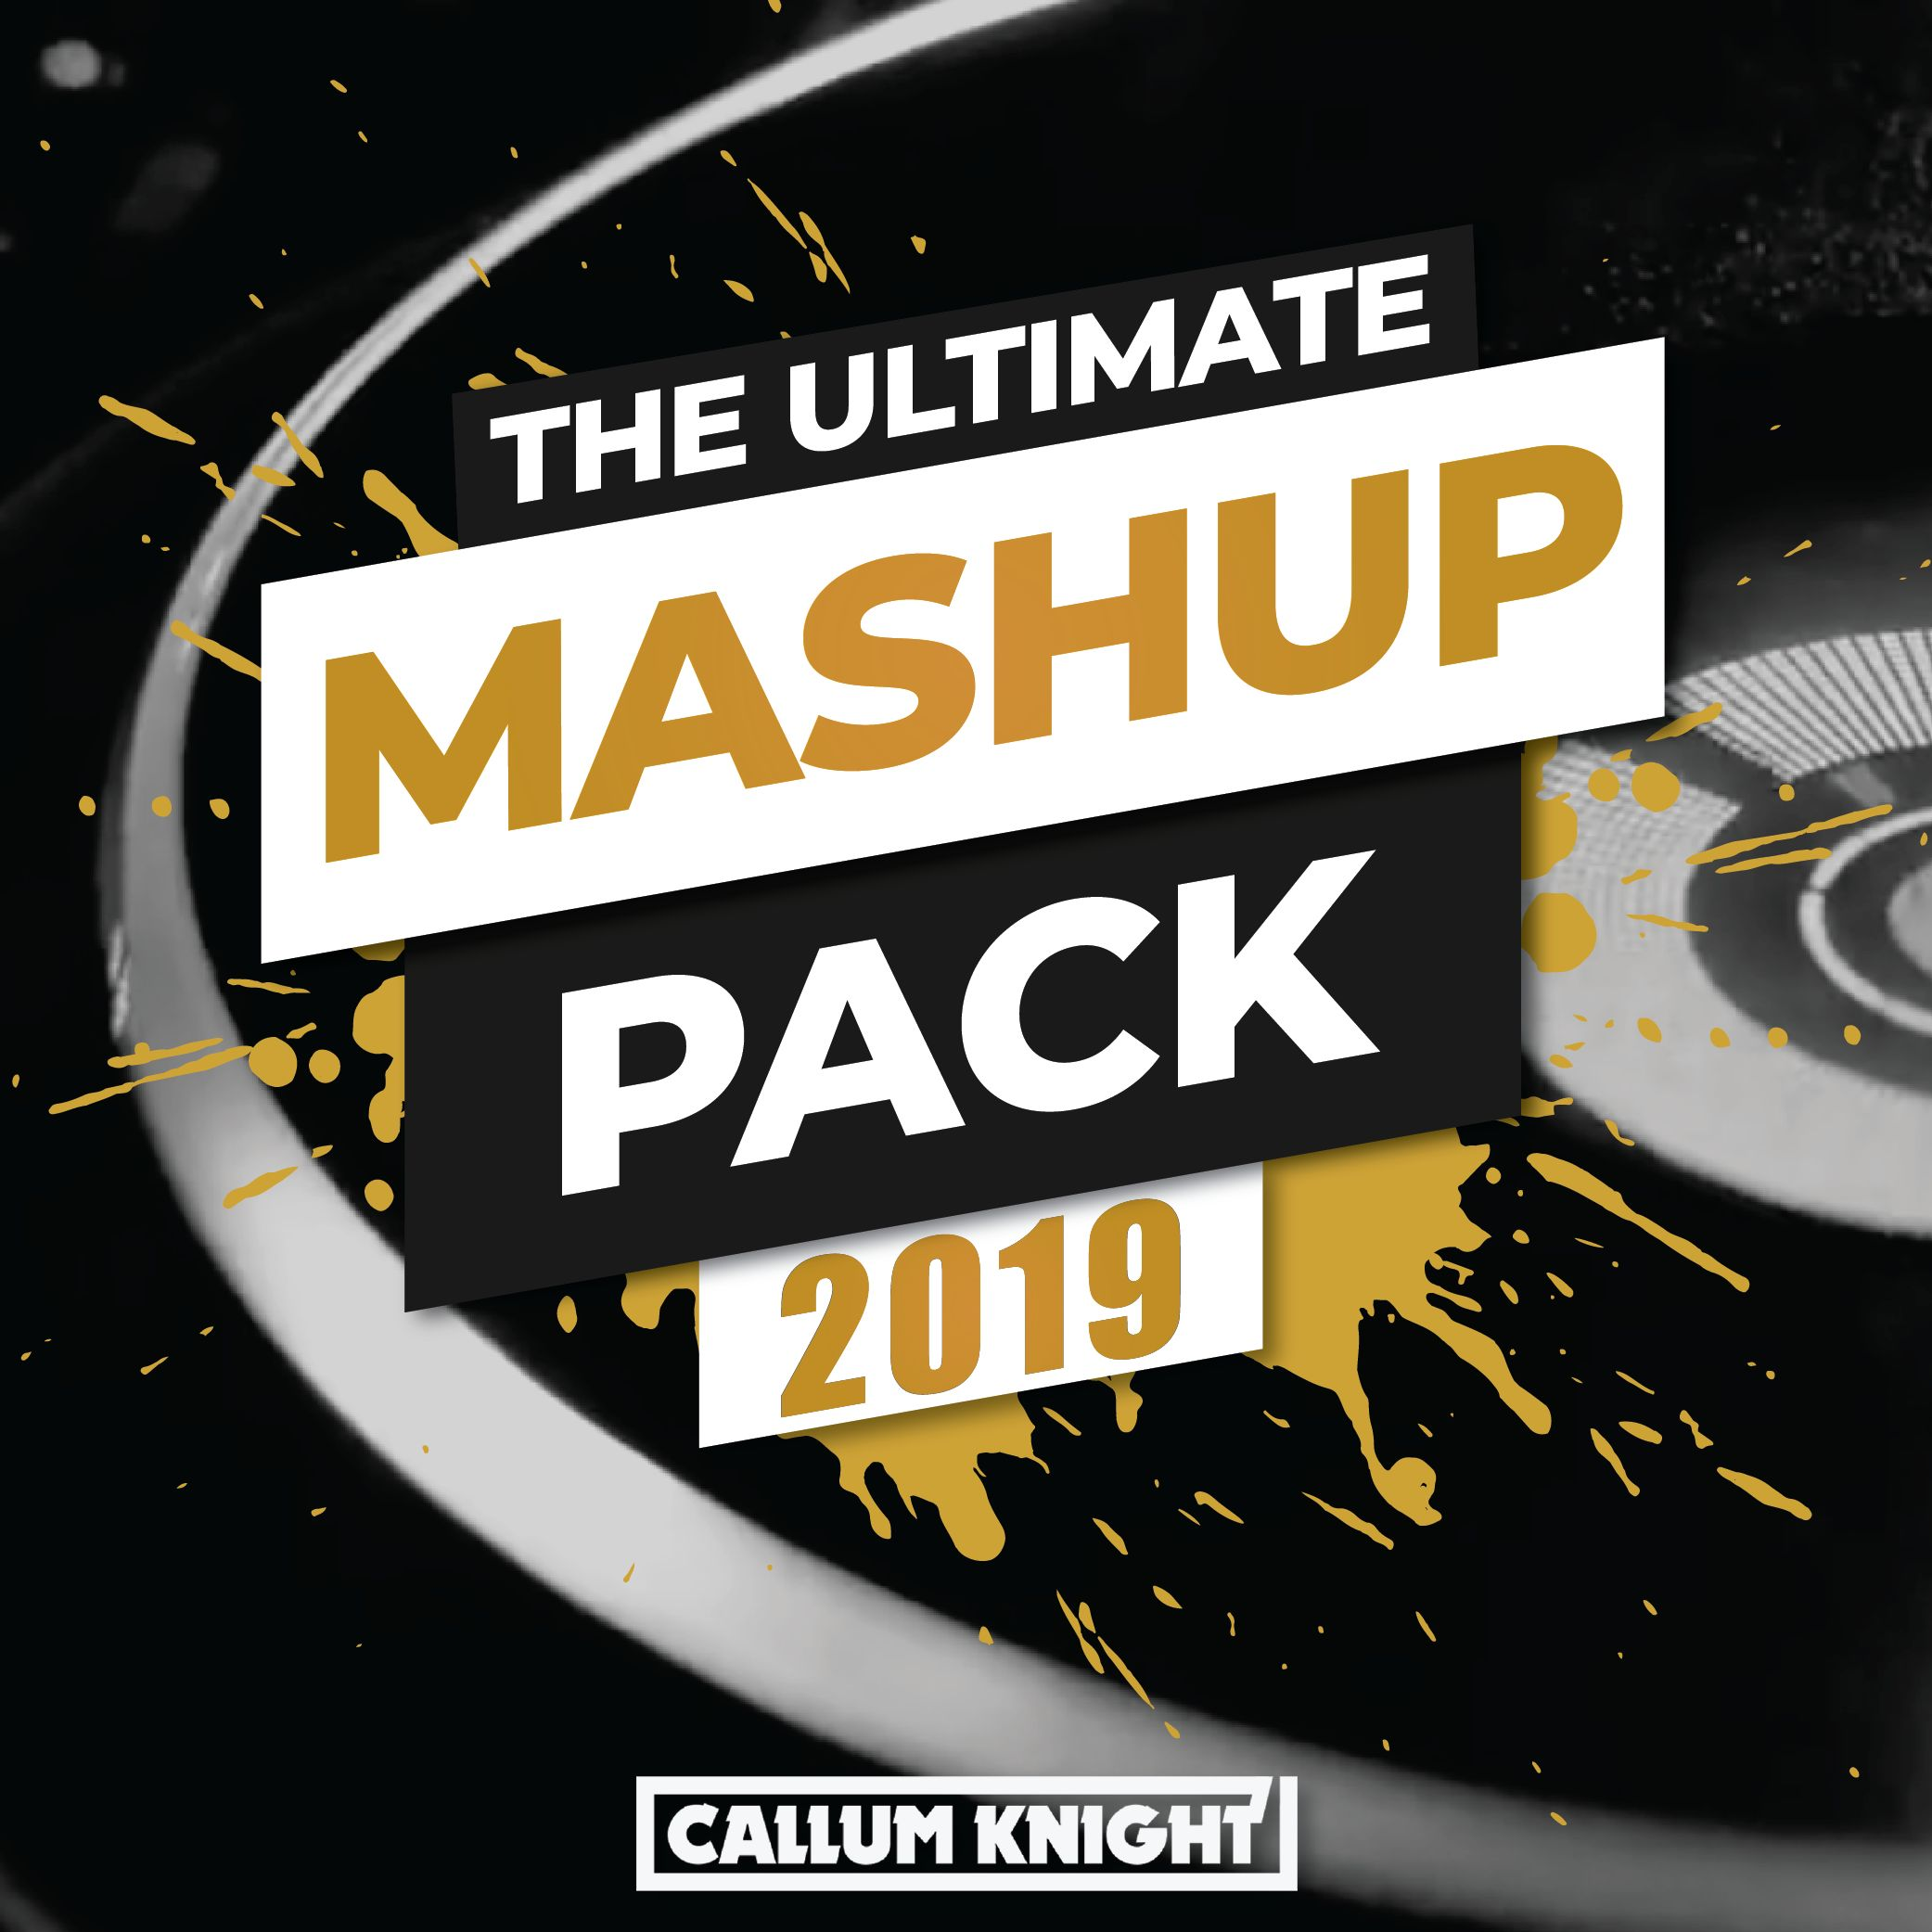 The Ultimate Mashup Pack 2019 by Callum Knight | Free